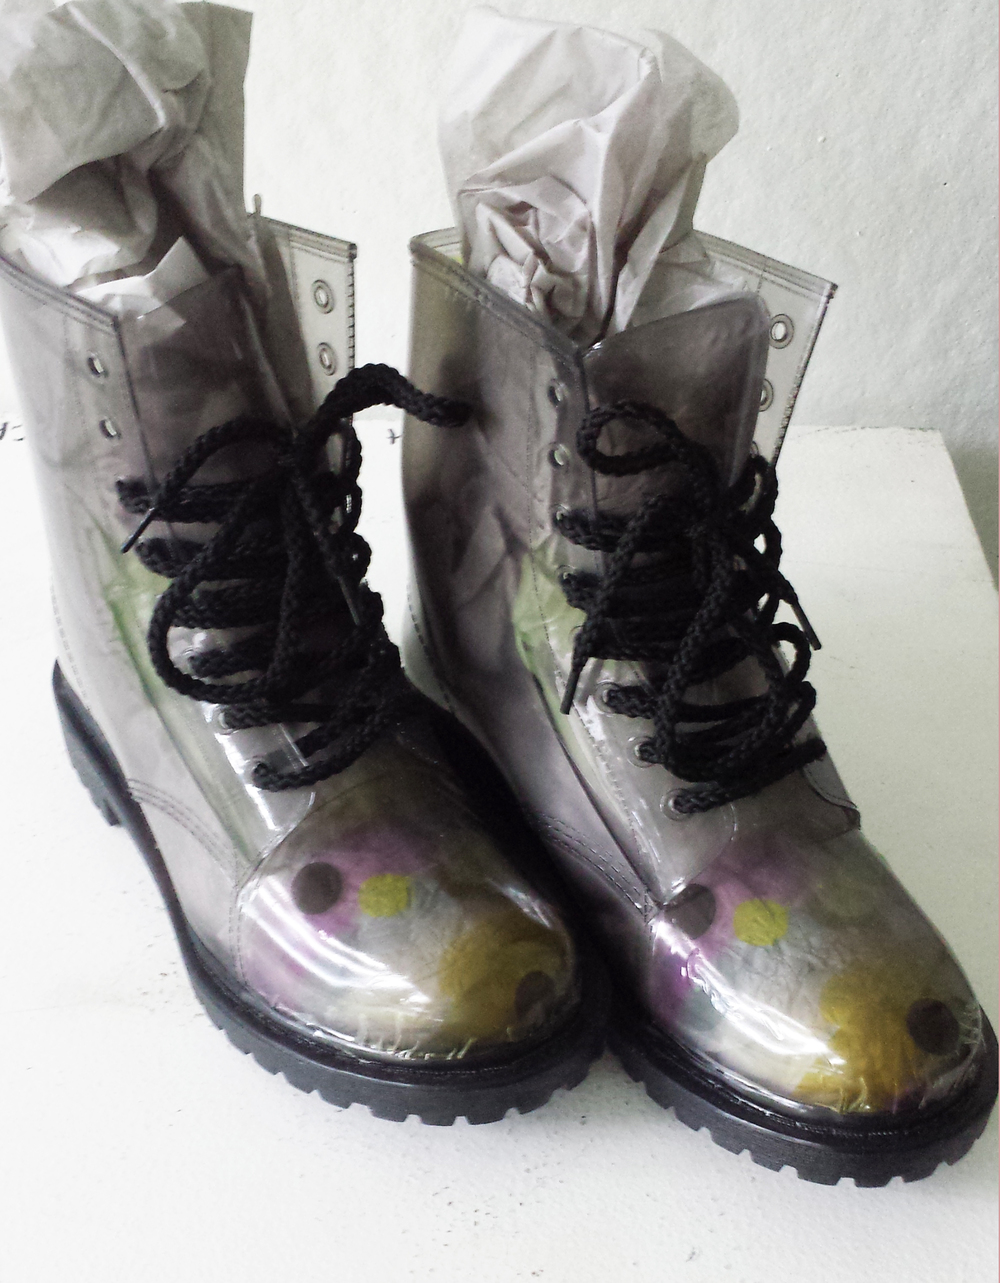 2016. Hand wrapped rain boots. Photoshop repeat printed on vinyl wrap using latex printer.